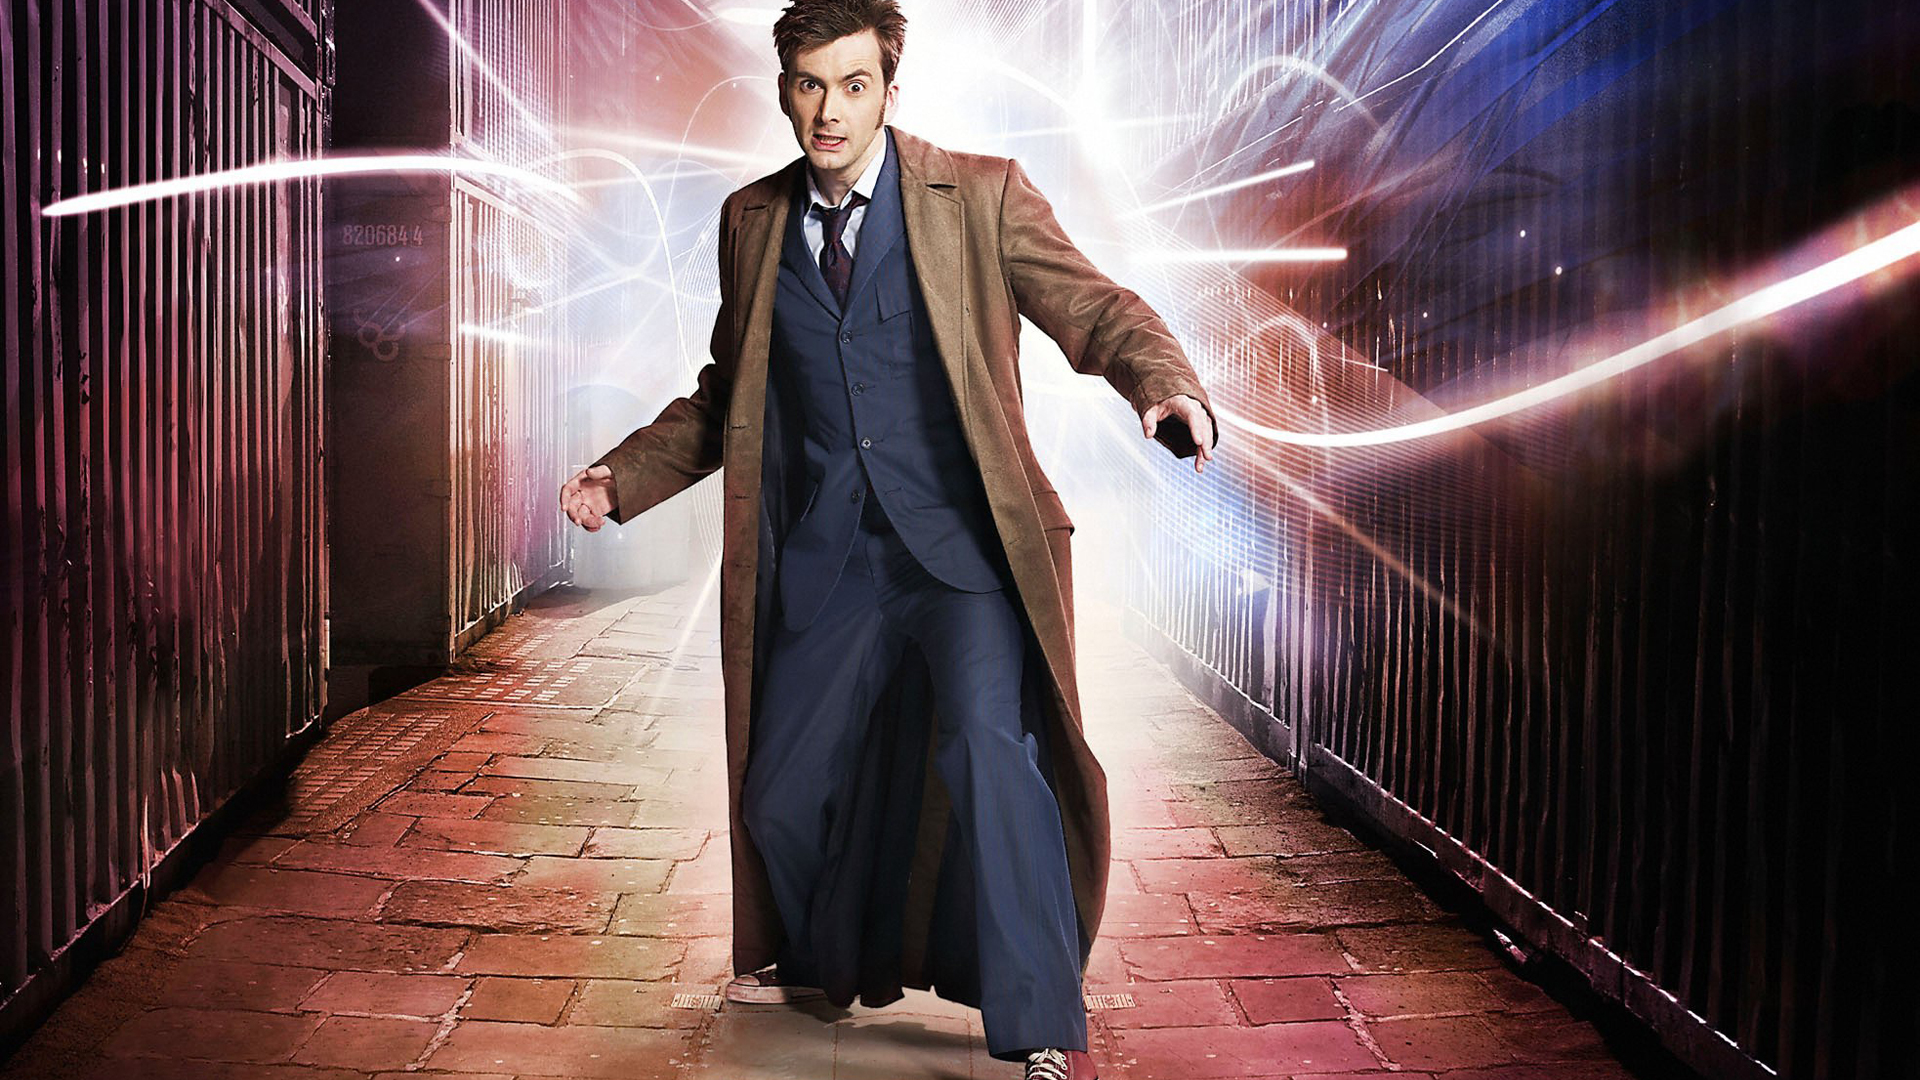 hq doctor who wallpaper hq wallpapers 1920x1080